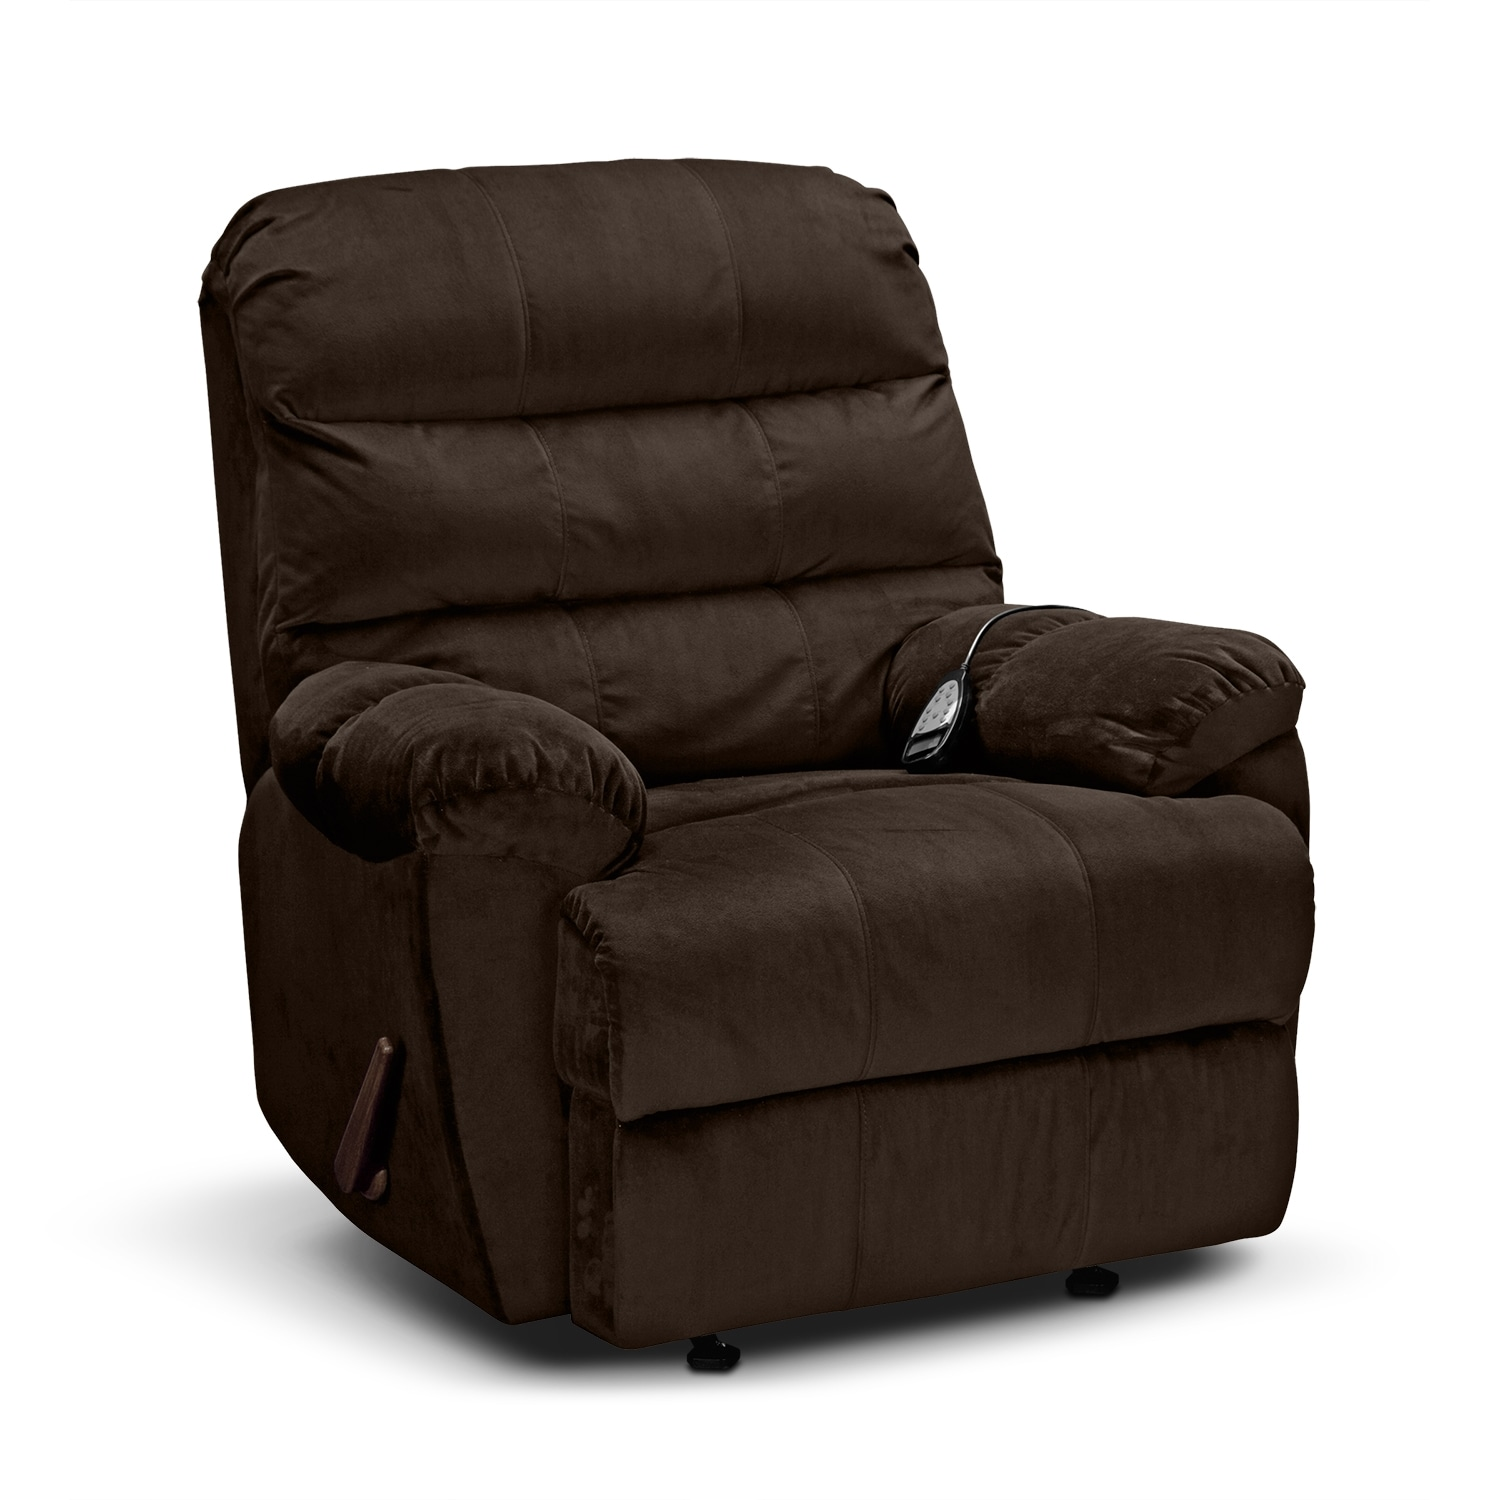 Atlantic Massage Rocker Recliner - Chocolate